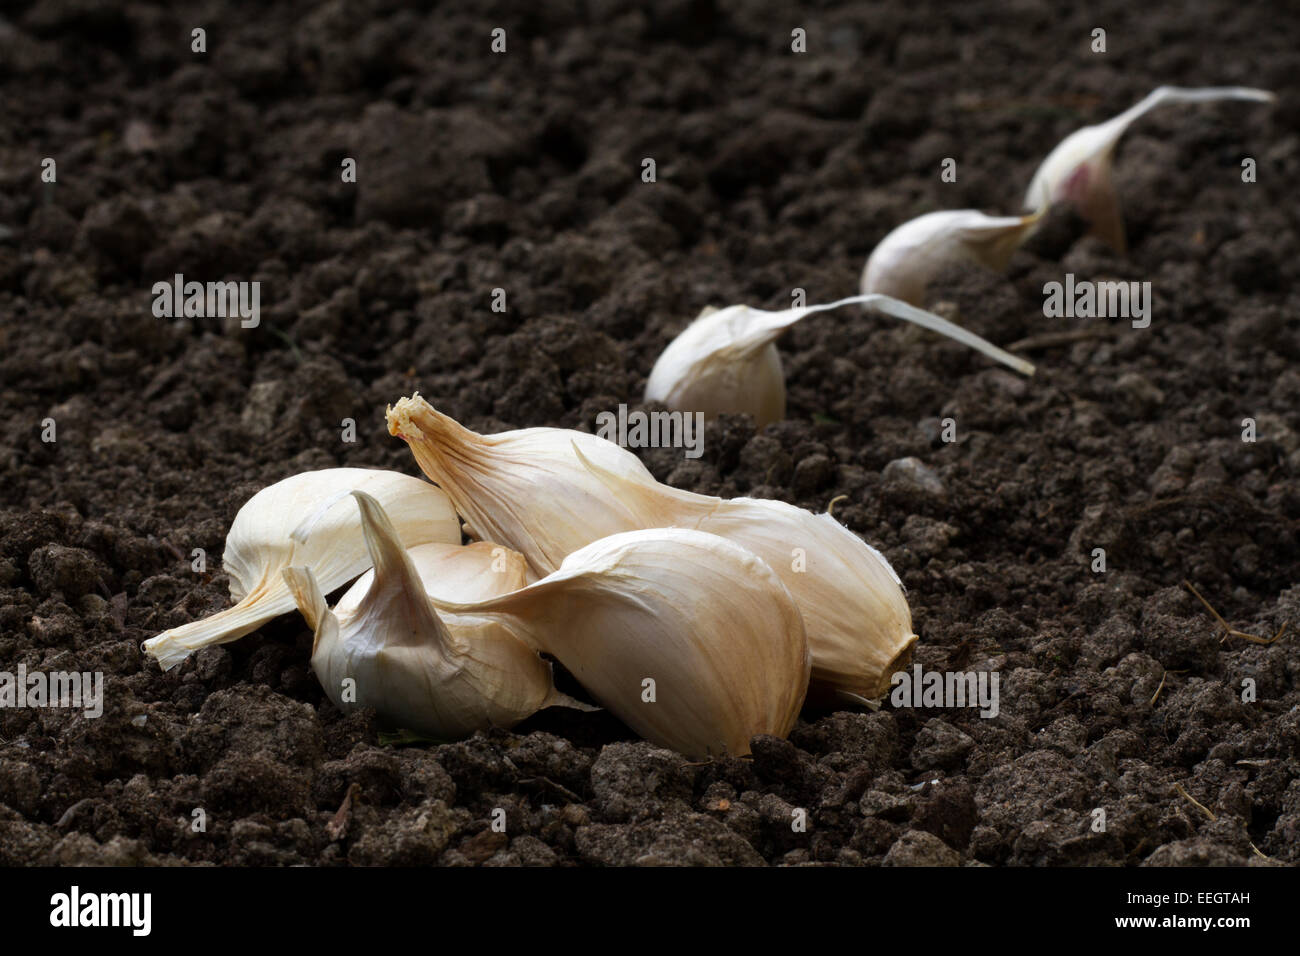 Garlic plants - Stock Image